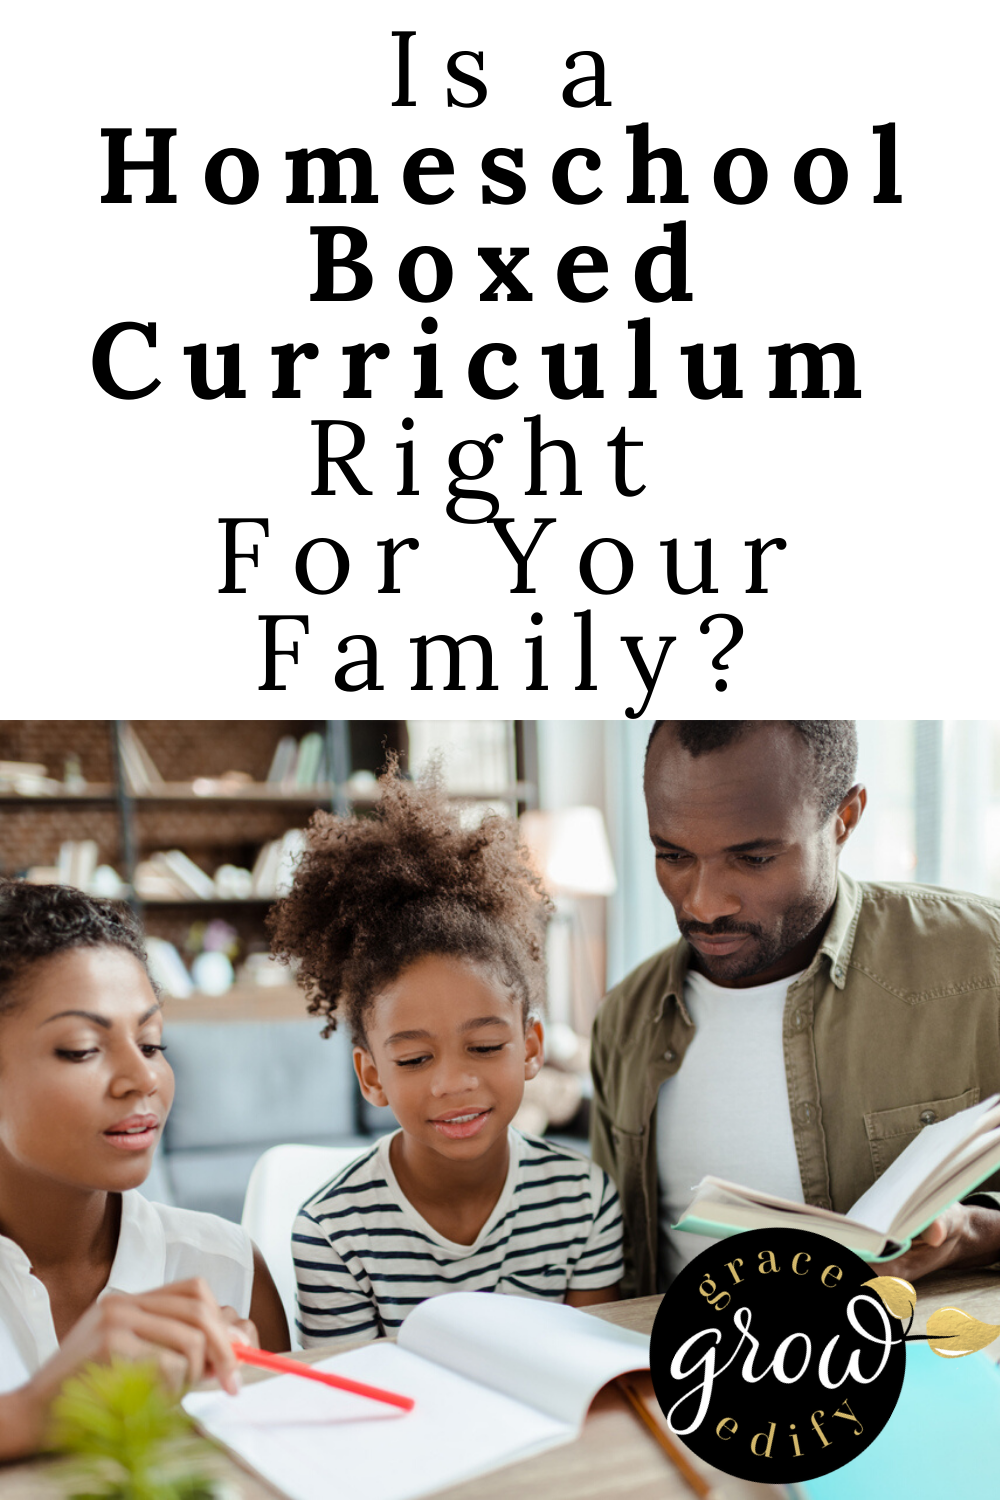 Homeschool Boxed Curriculum